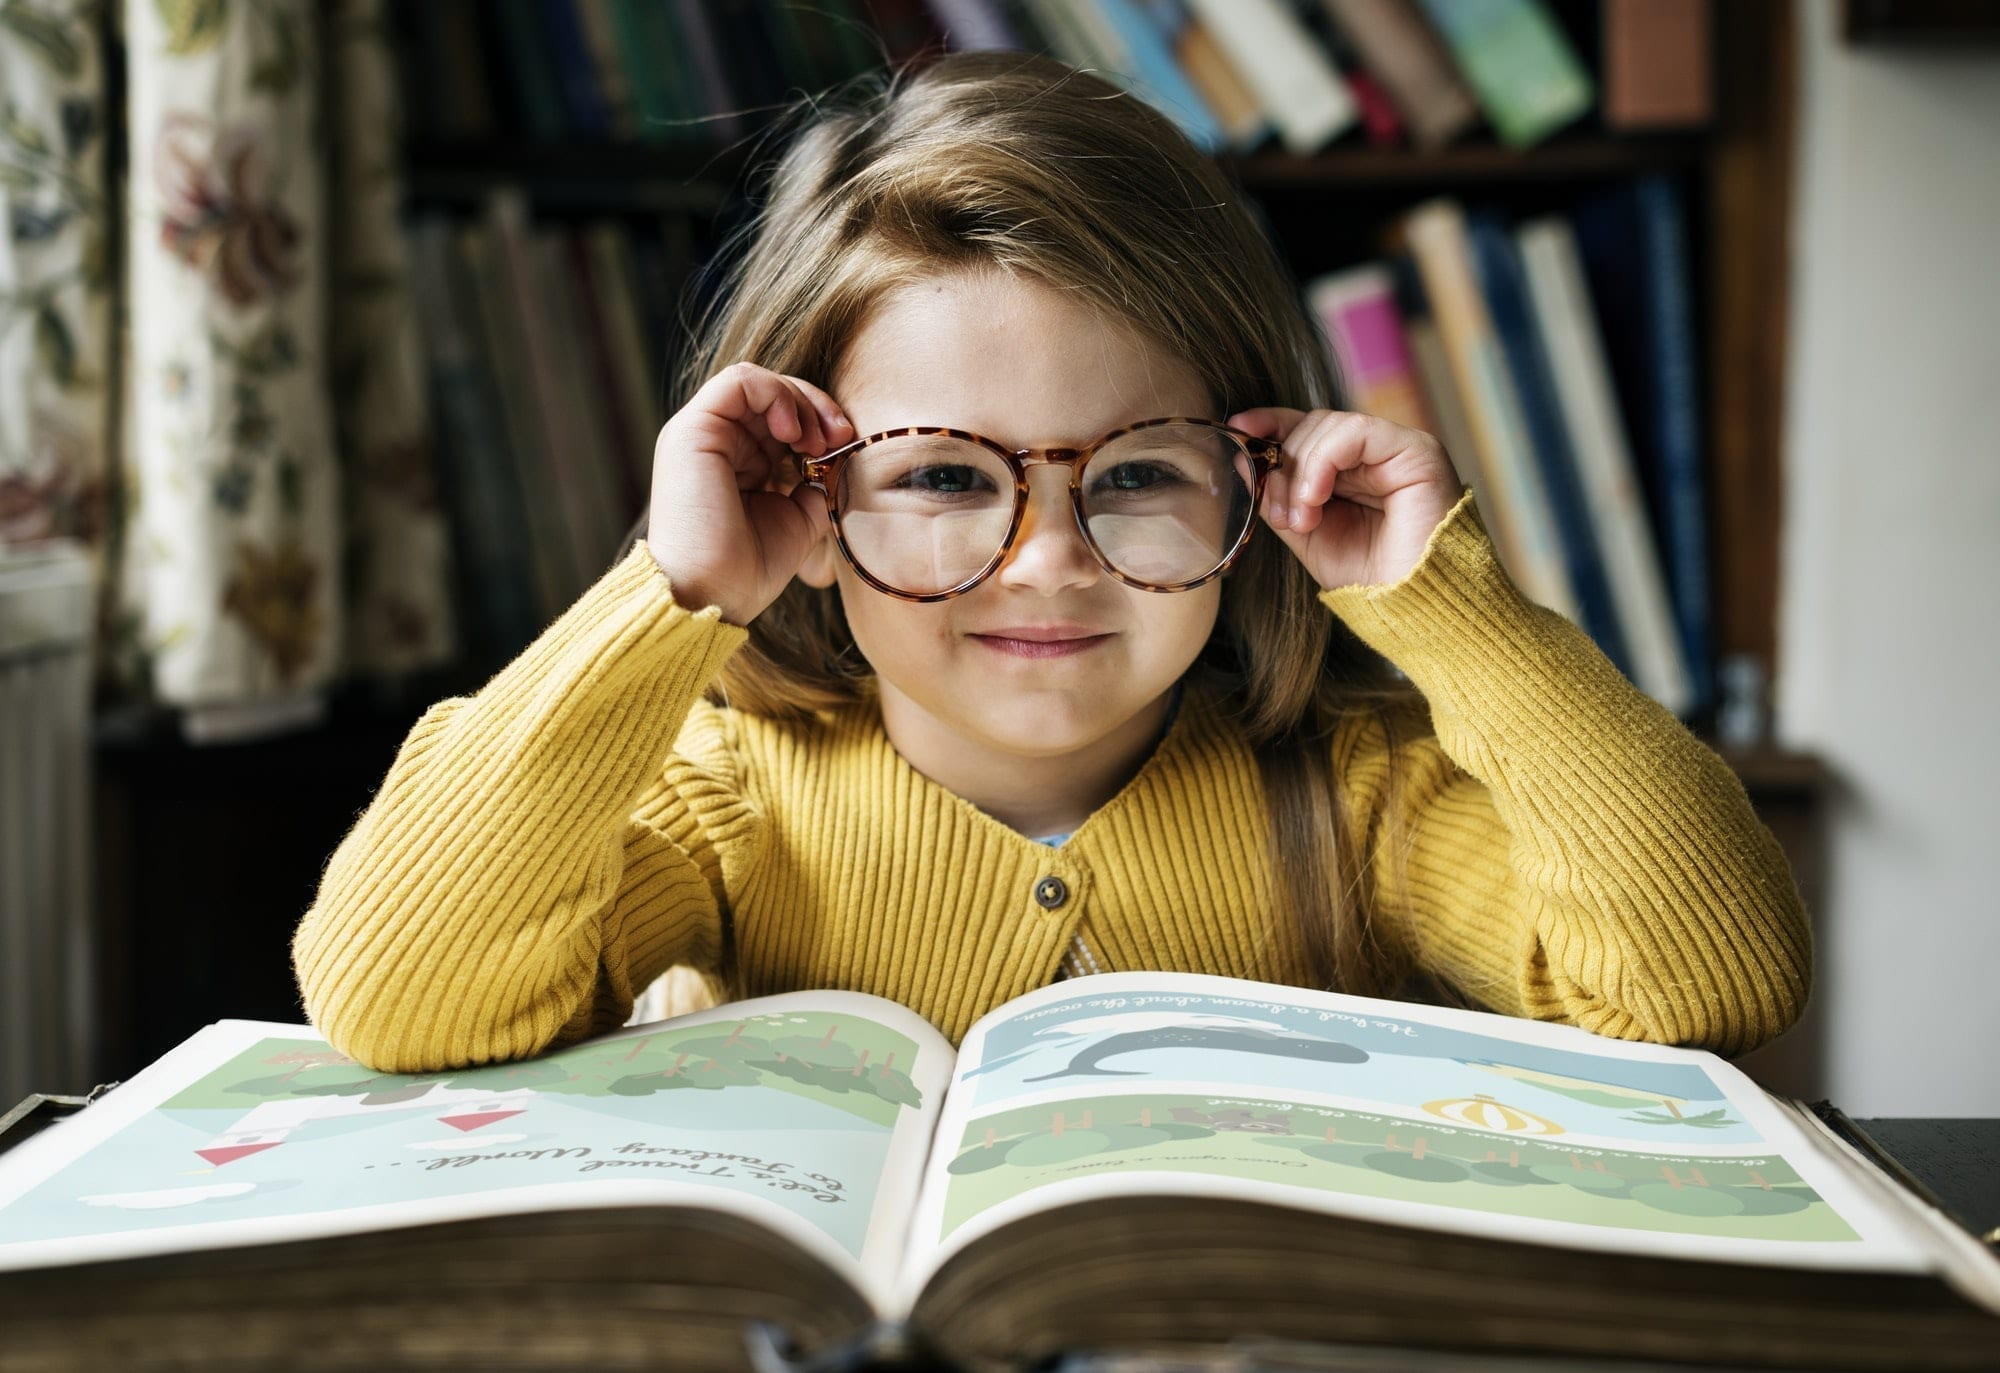 A young girl in glasses smiling with an open book in front of her